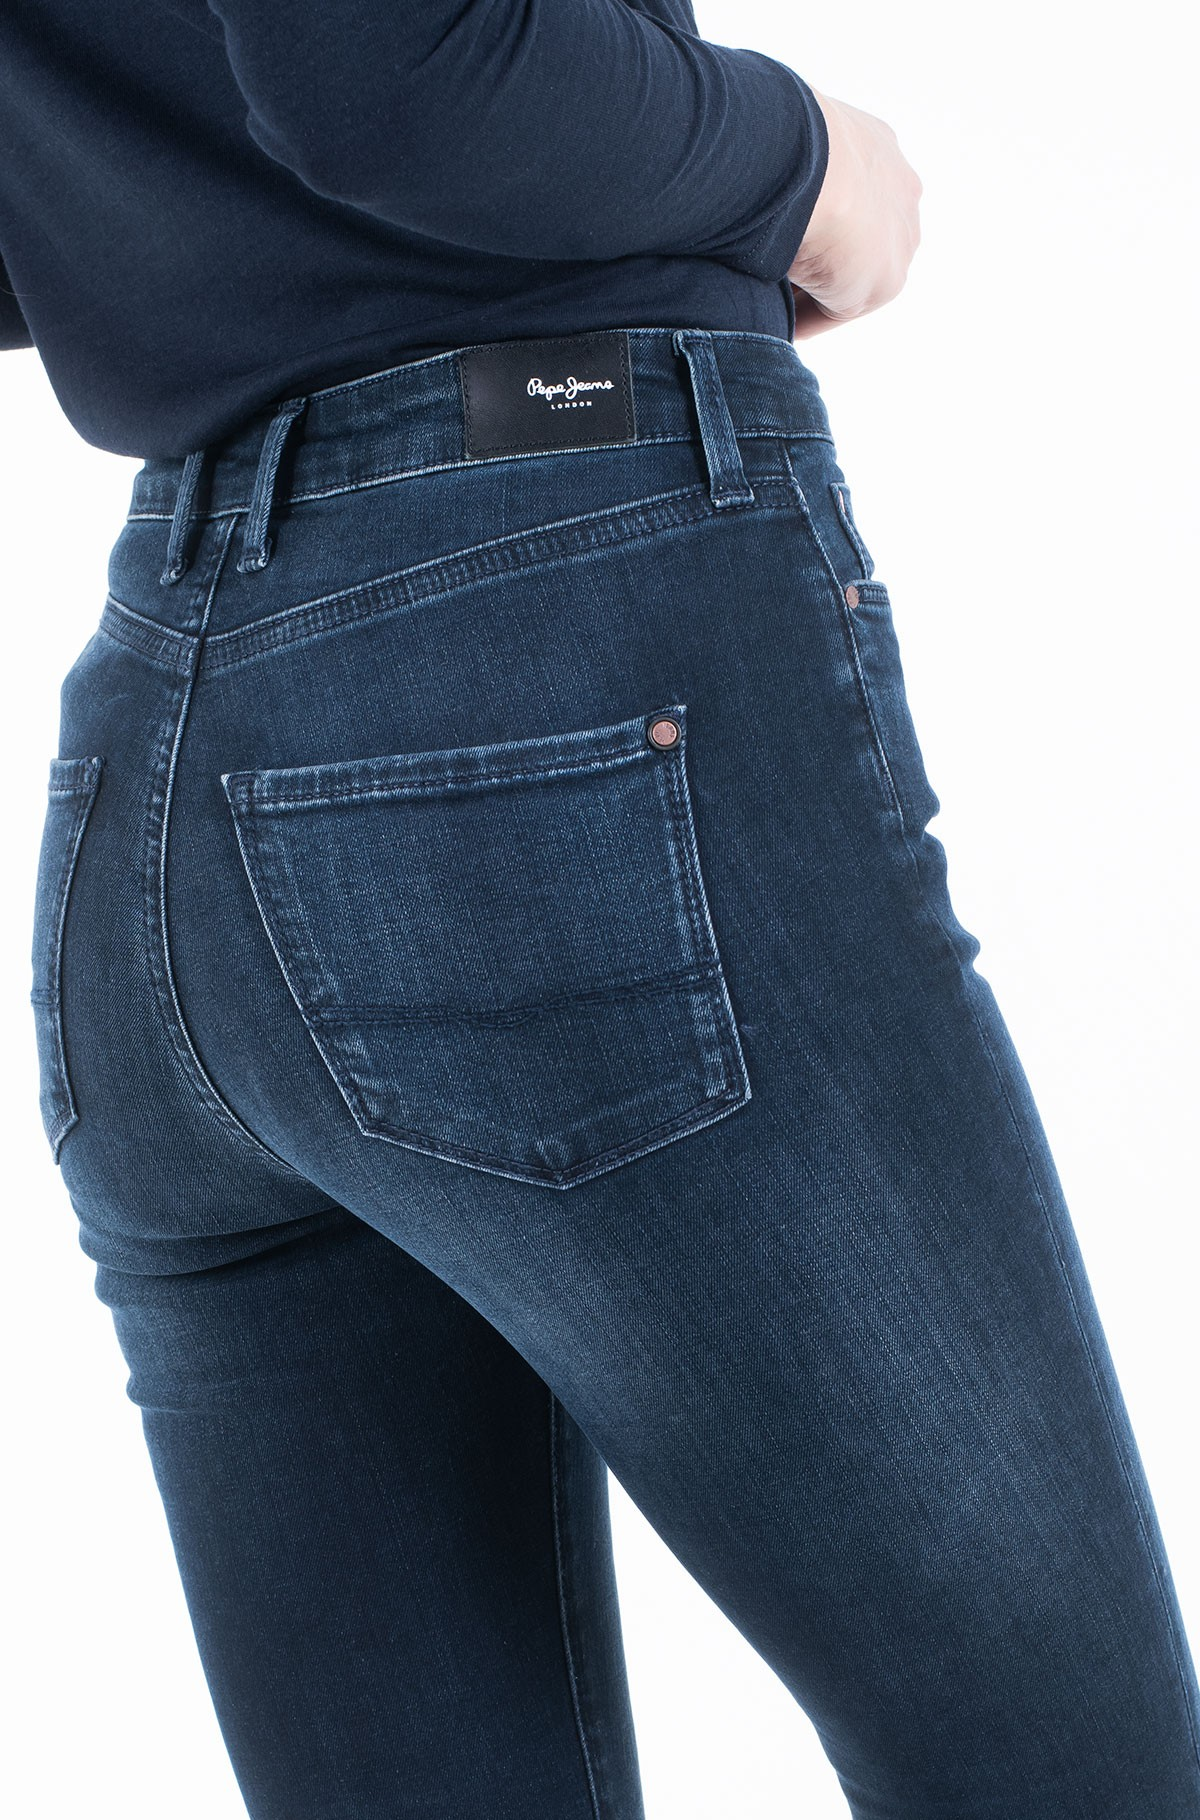 Jeans DION/PL202285DC6-full-2